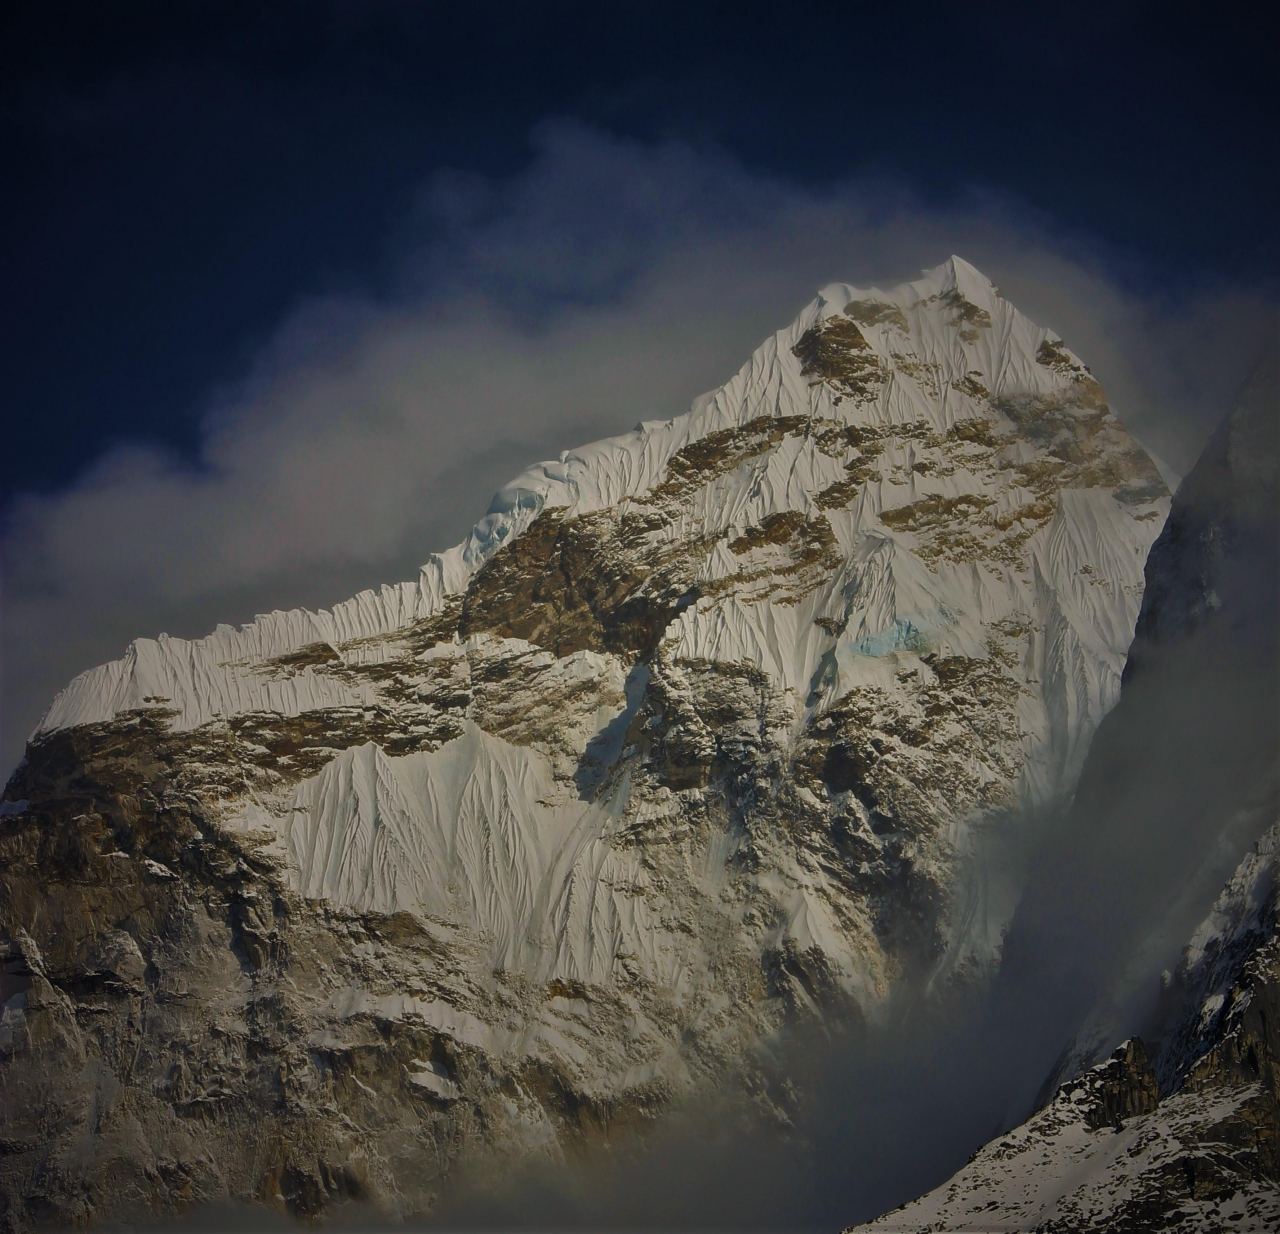 A picture from Ama Dablam by Jase Wilson